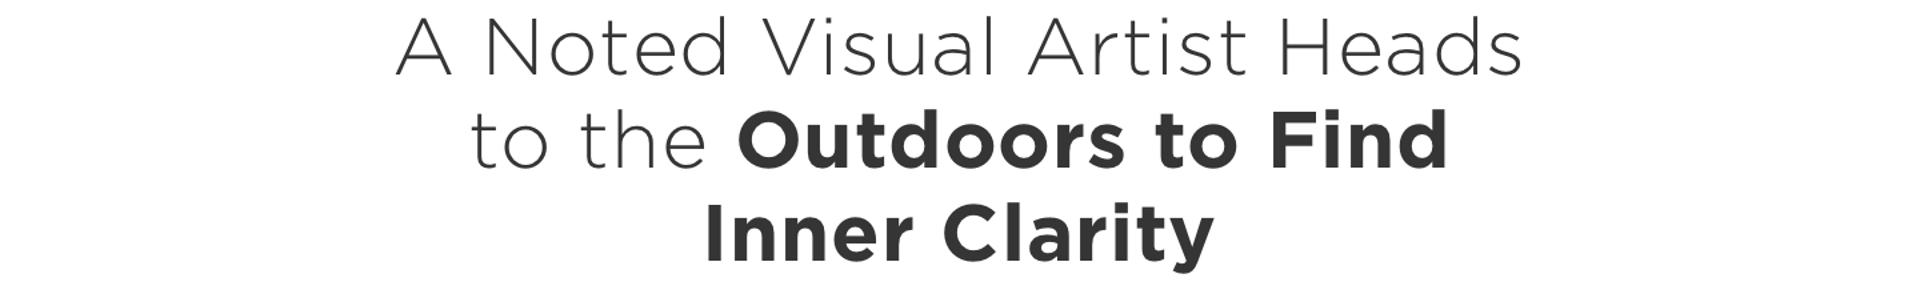 A Noted Visual Artist Heads to the Outdoors to Find Inner Clarity